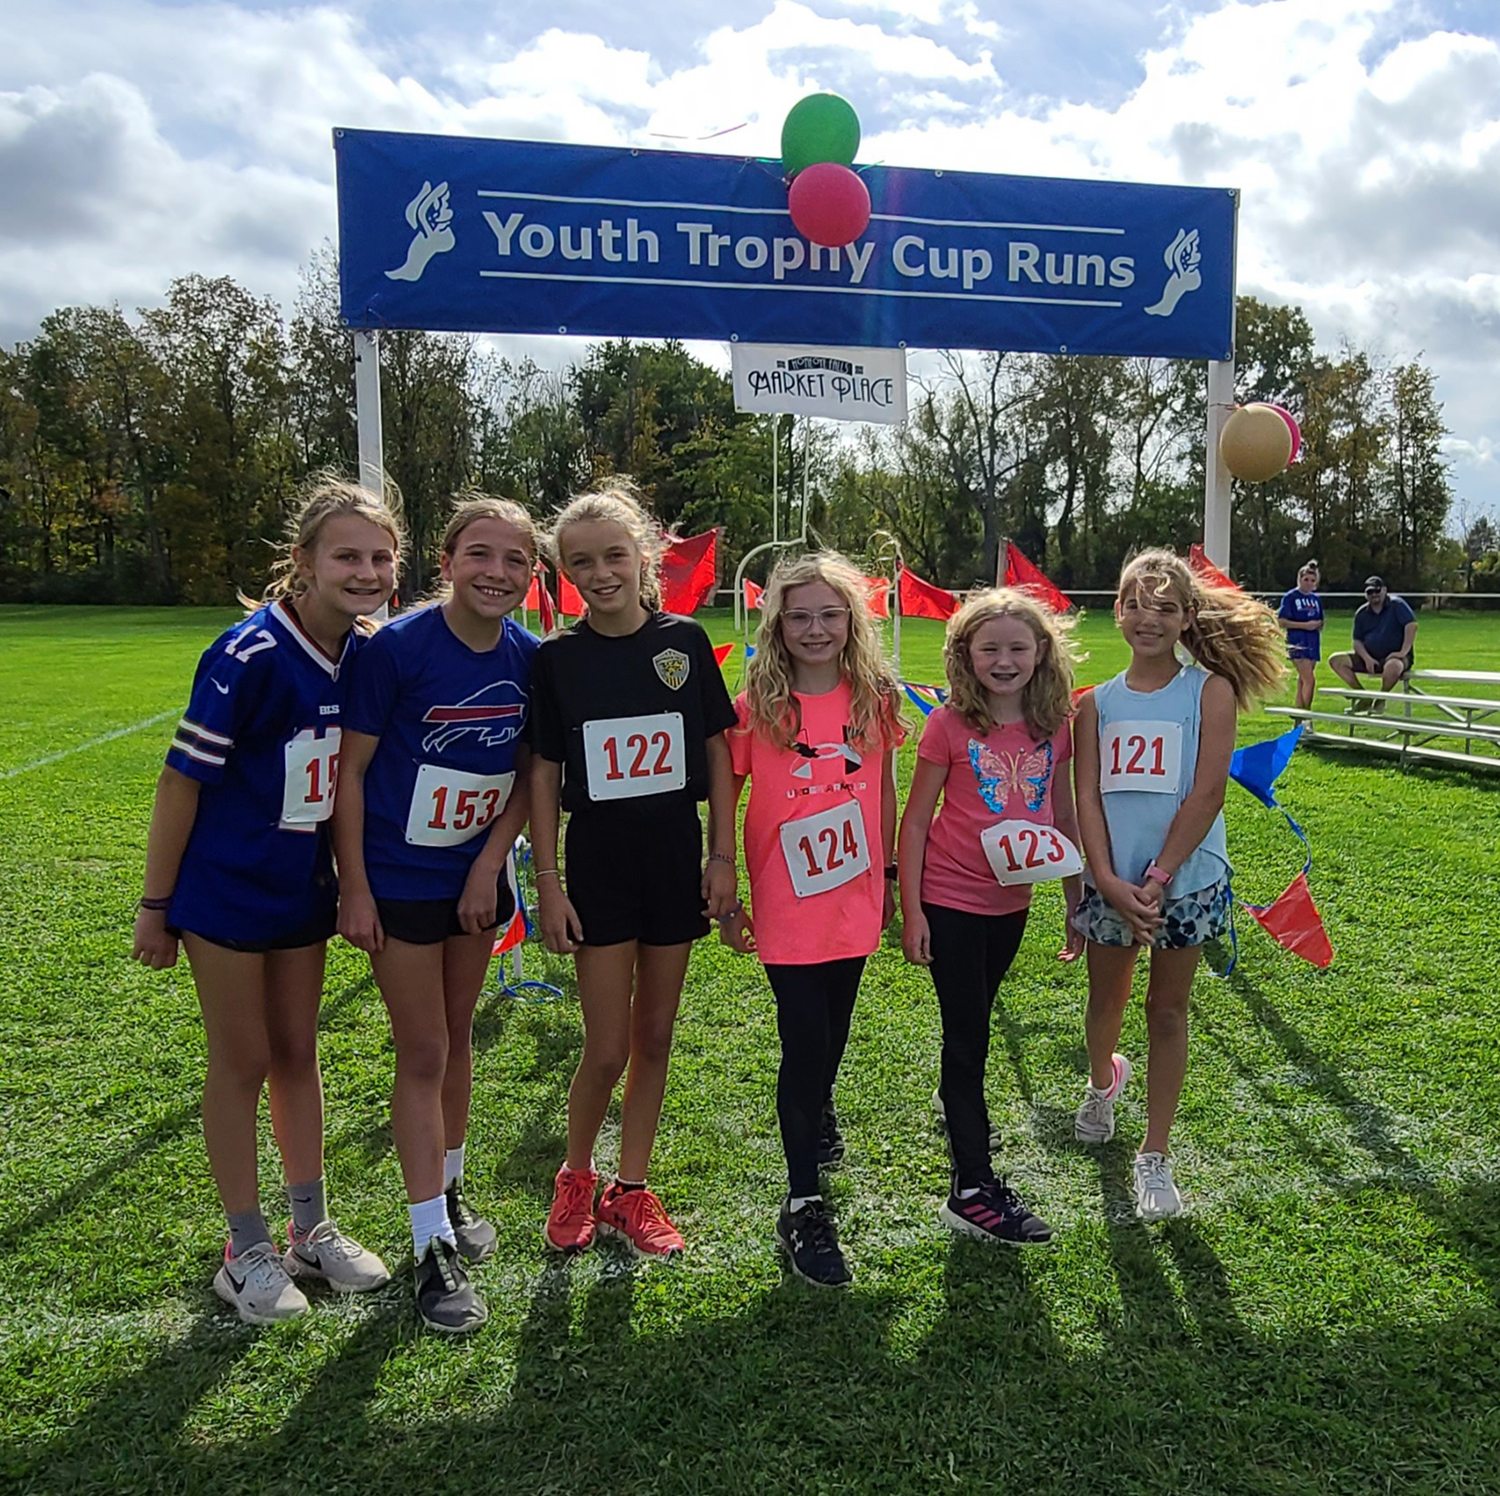 Youth Trophy Cup Runs Delights, Once Again